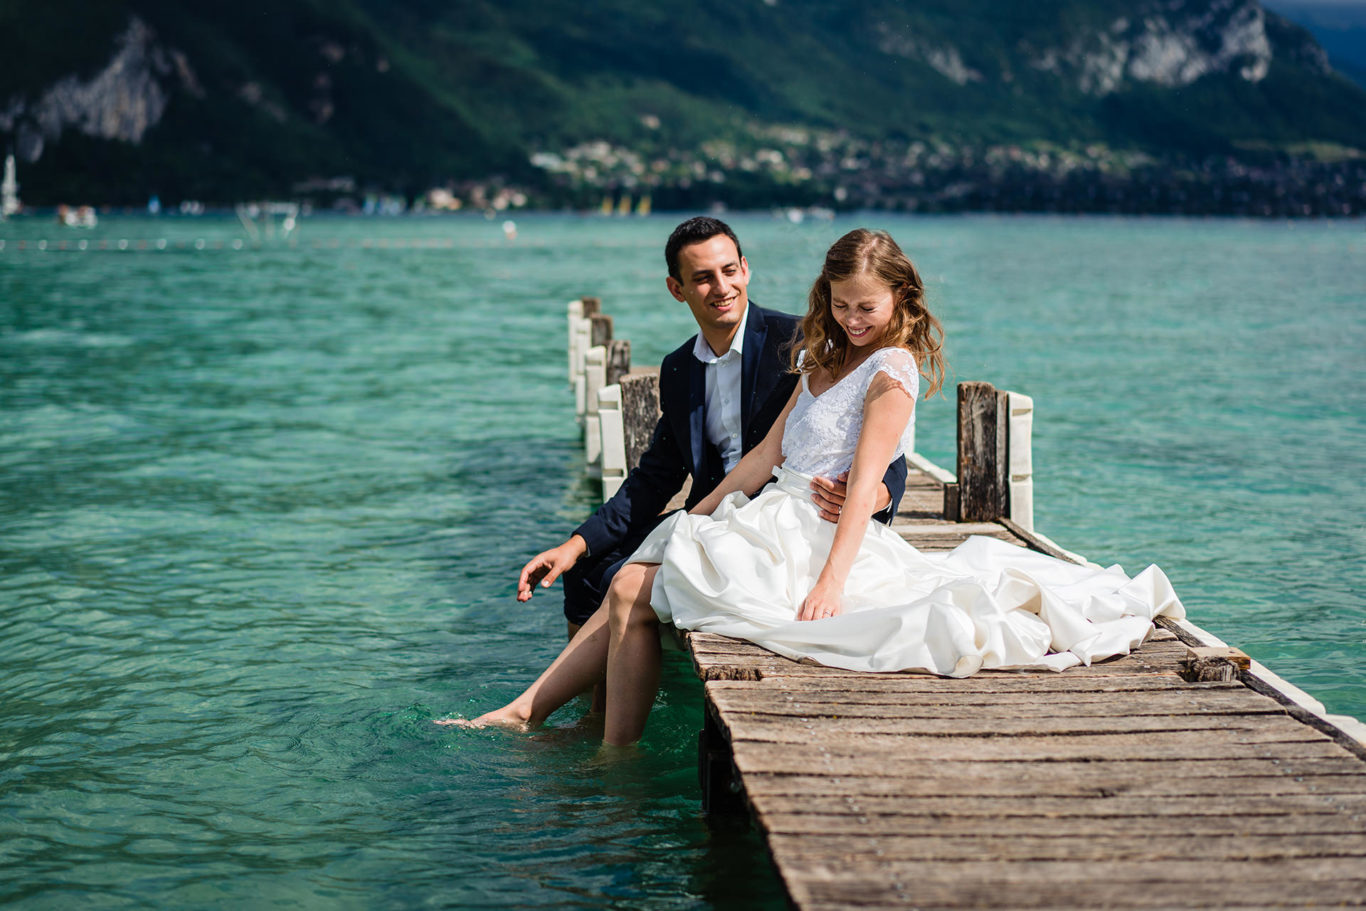 Love the Dress - Annecy Lake - Mihaela & Guillame